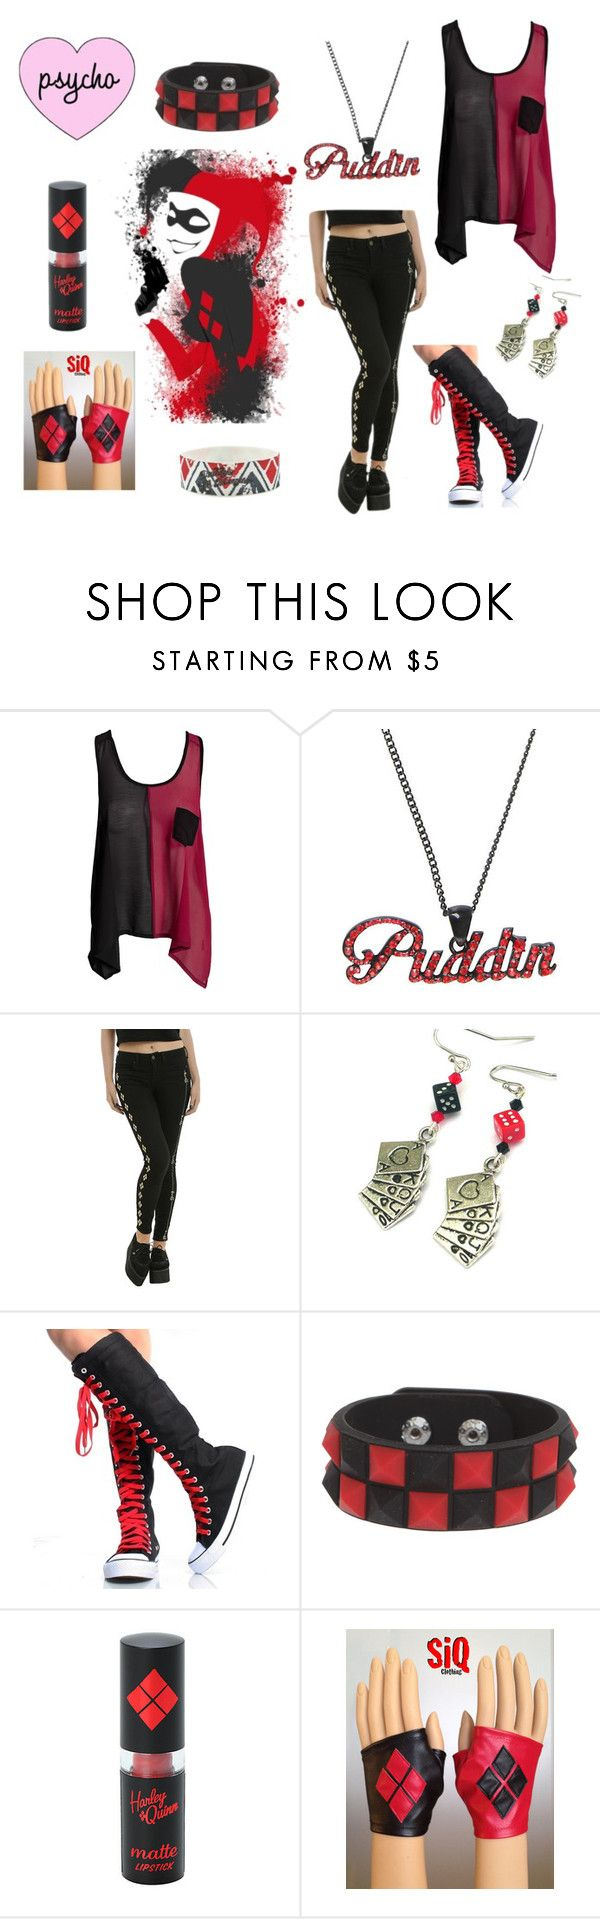 """""""Harley Quinn #8"""" by nightwing02 on Polyvore featuring Club L, Mad Love, batman, Dccomics, harleyquinn and SuicideSquad - COSPLAY IS BAEEE!!! Tap the pin now to grab yourself some BAE Cosplay leggings and shirts! From super hero fitness leggings, super hero fitness shirts, and so much more that wil make you say YASSS!!!"""